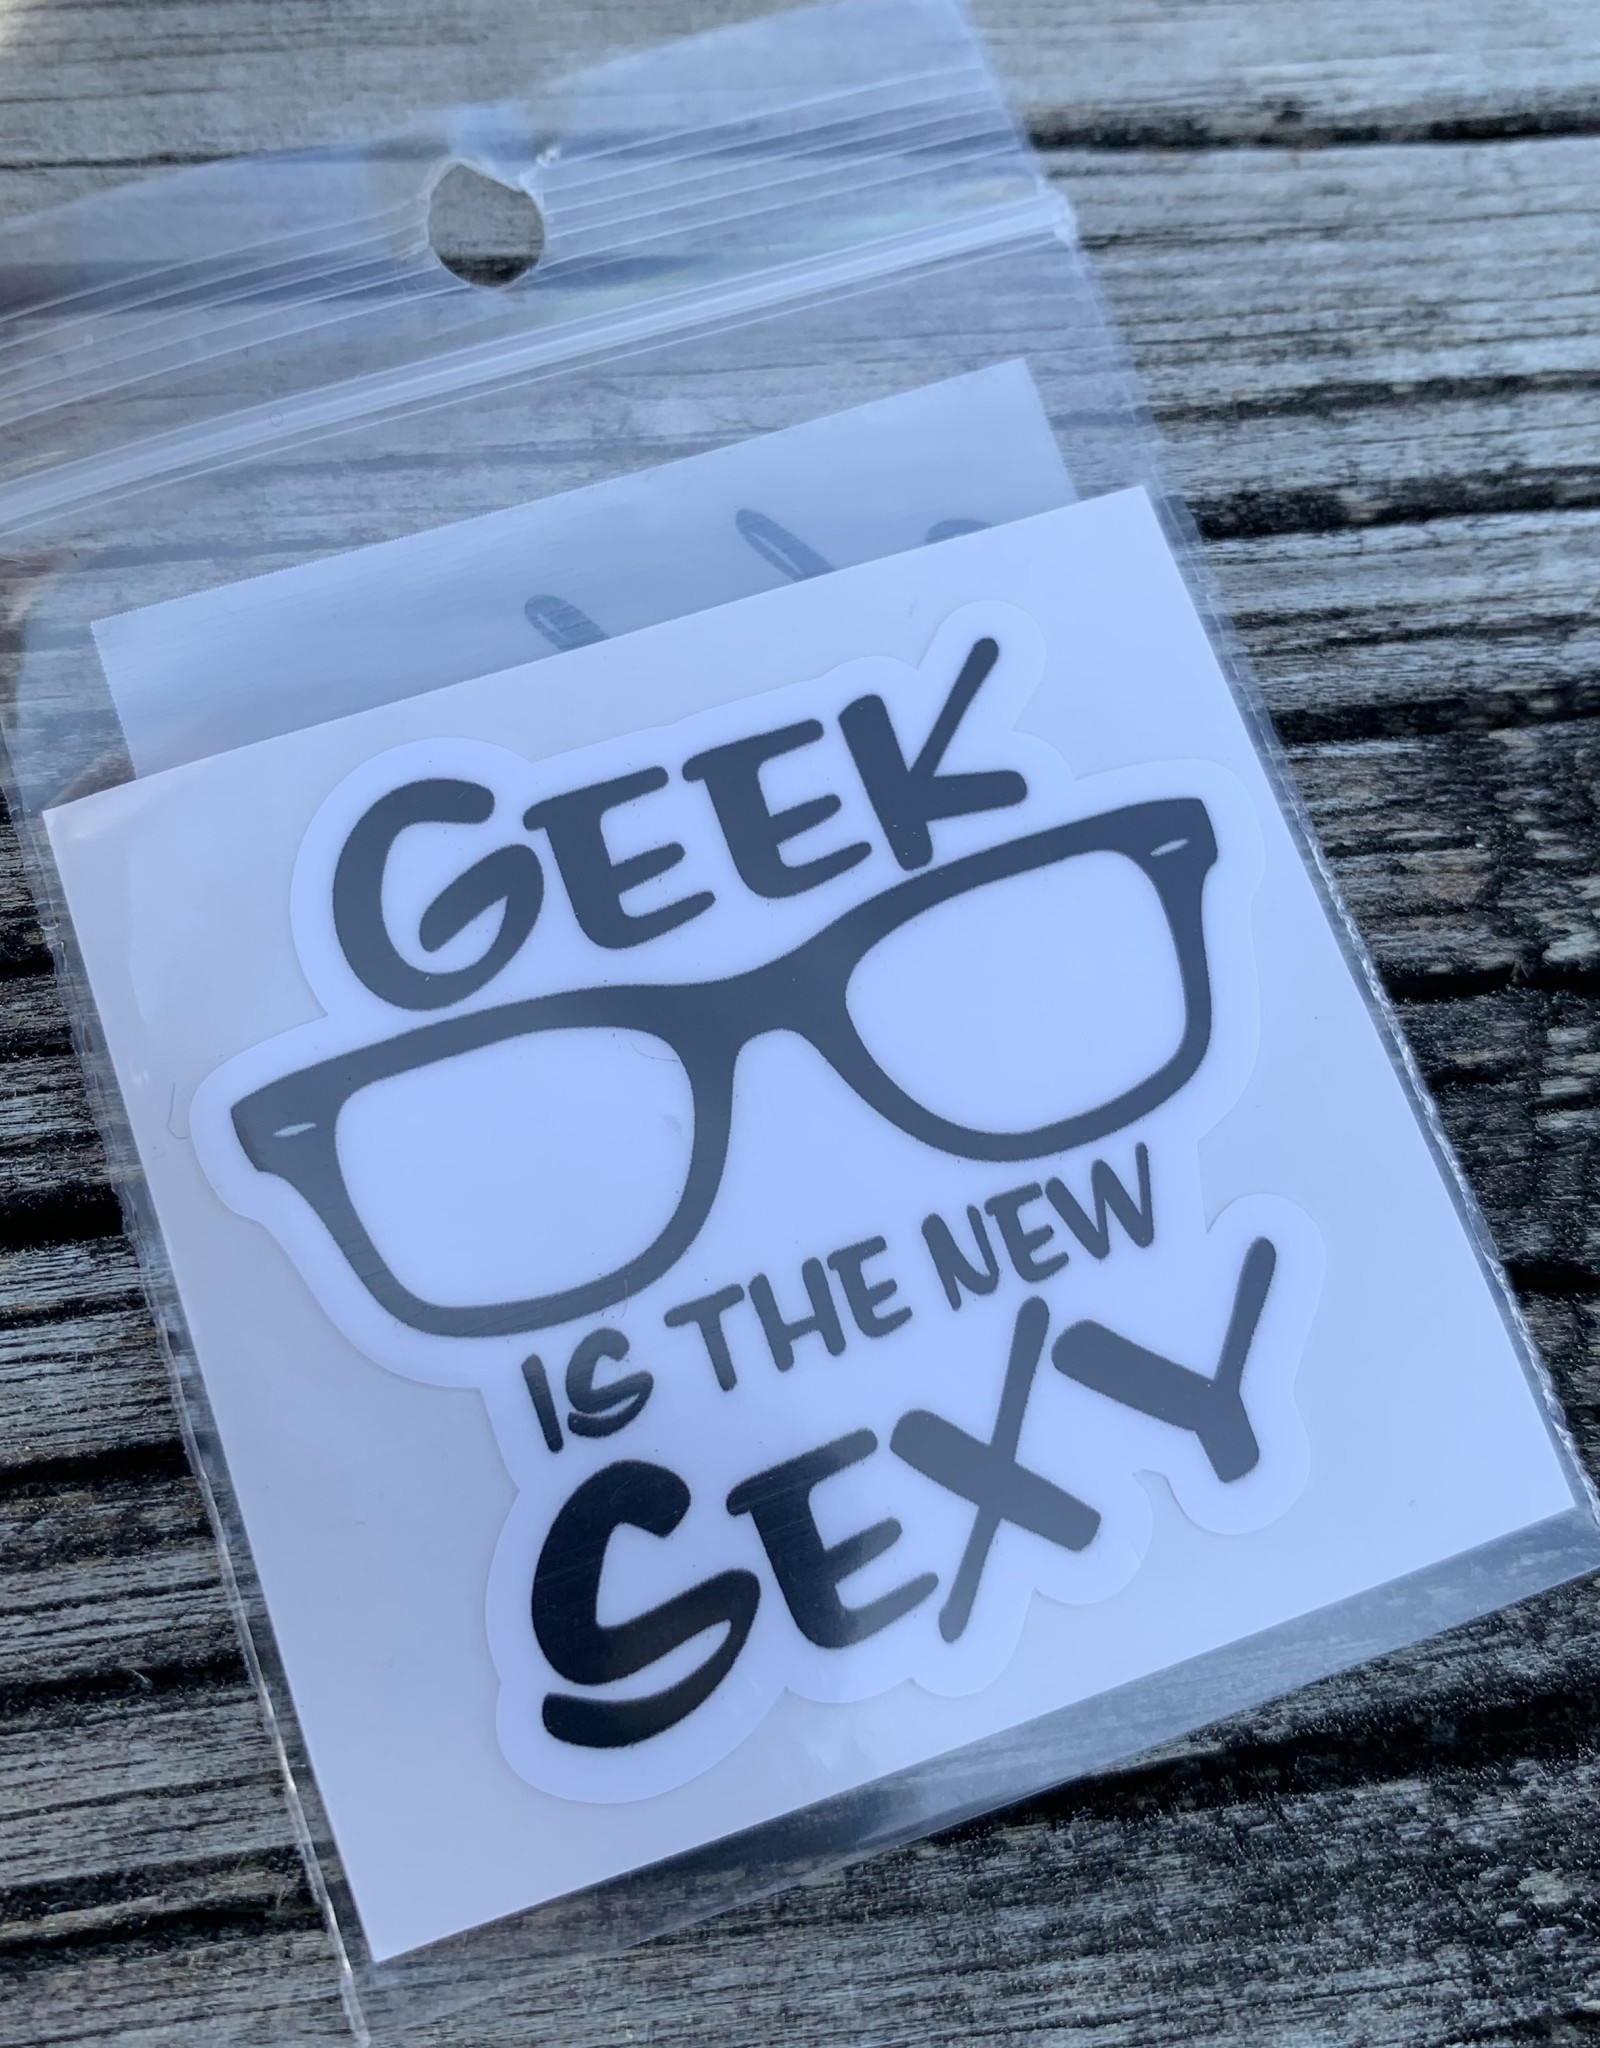 GEEK IS THE NEW SEXY STICKER (CELL)